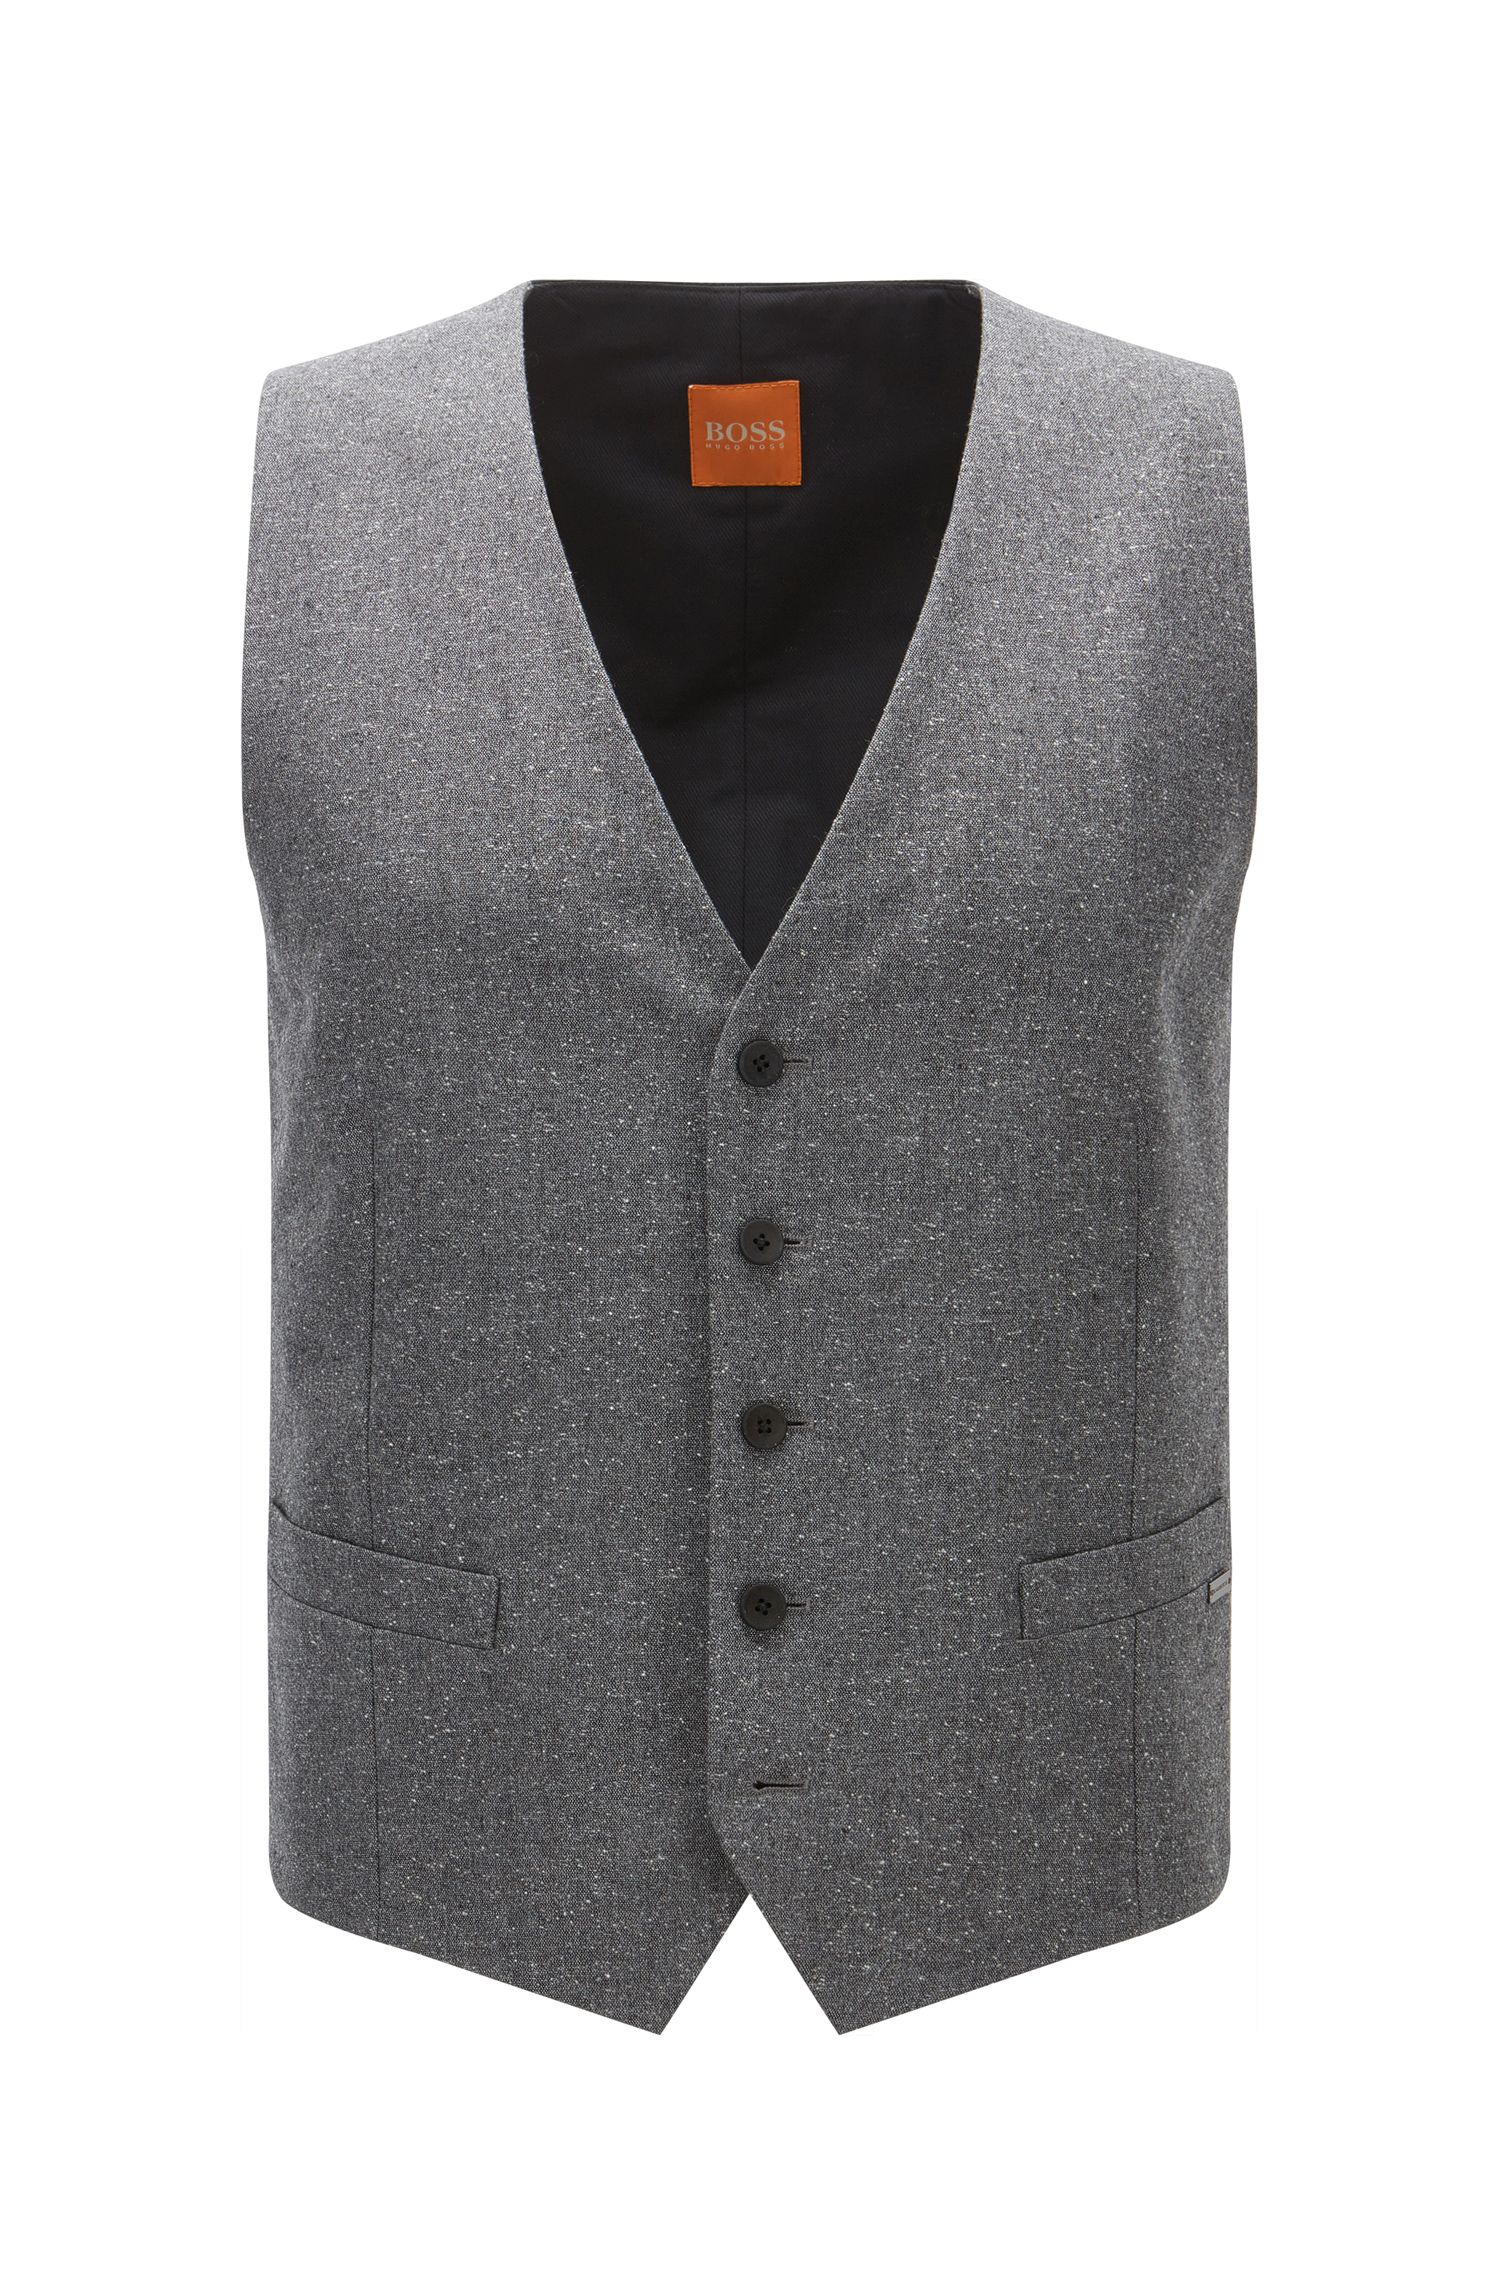 Chaleco slim fit en un invernal tejido tweed